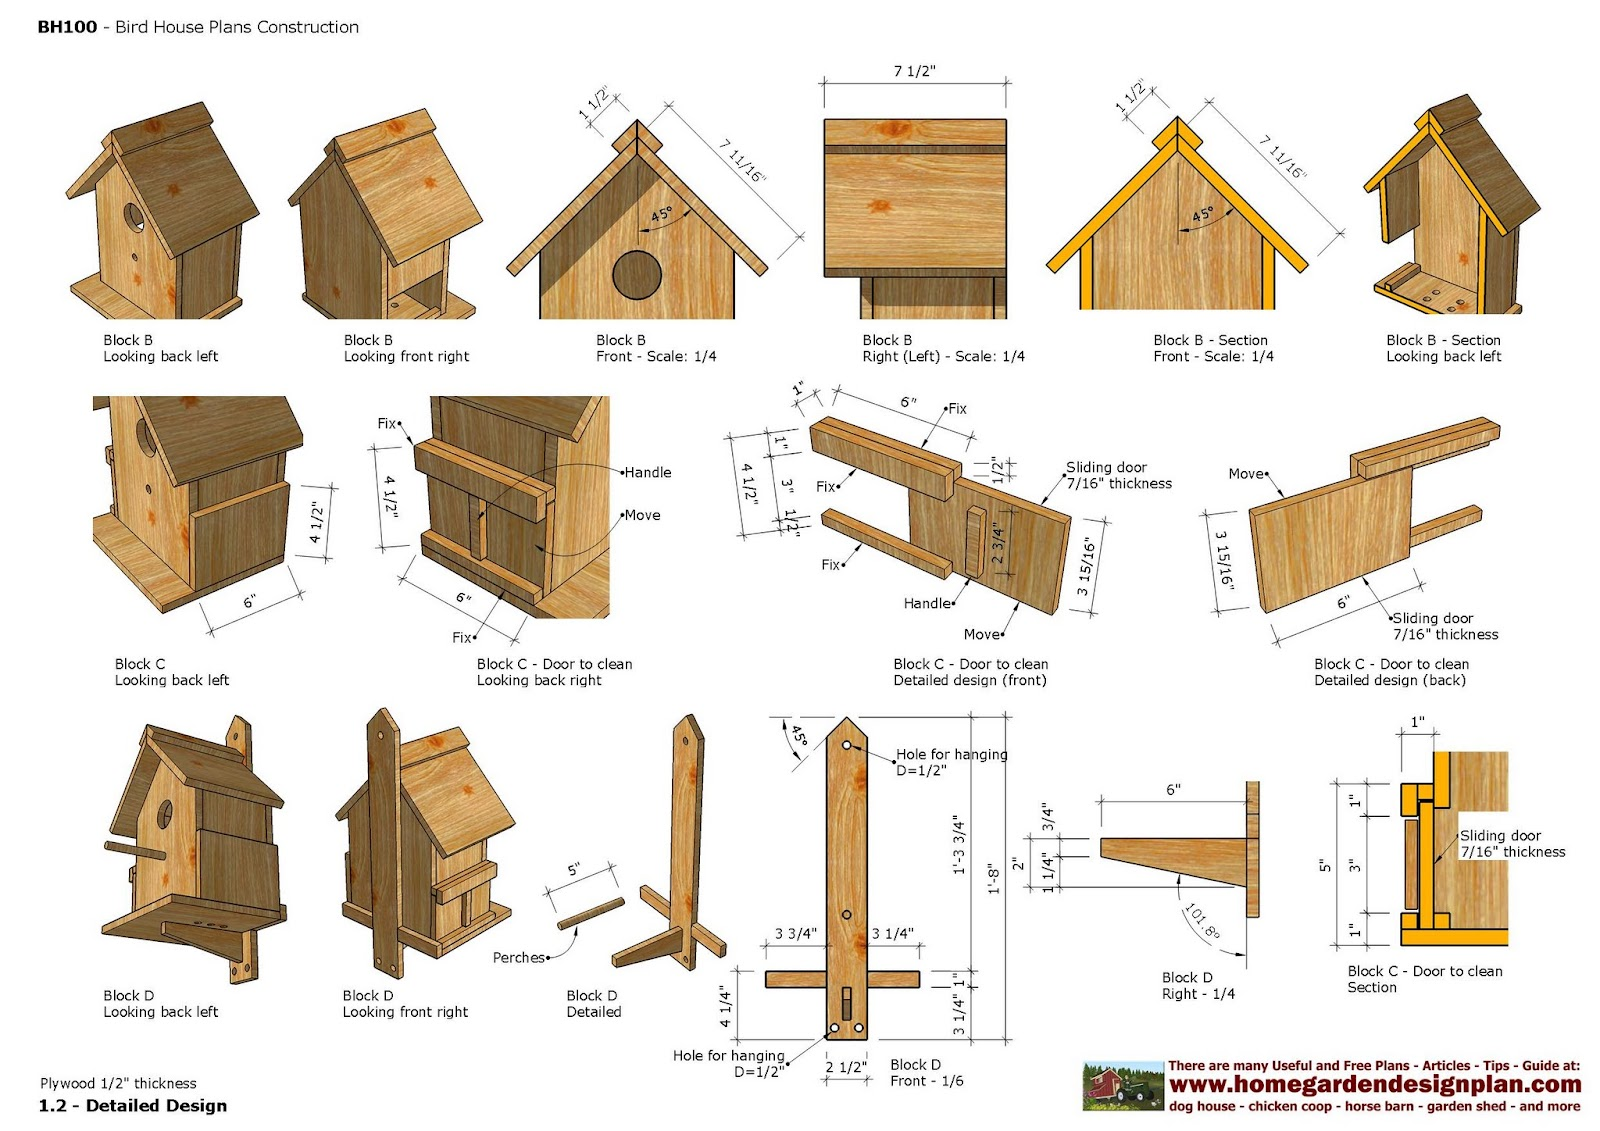 Home garden plans bh bird house plans construction for House design house design